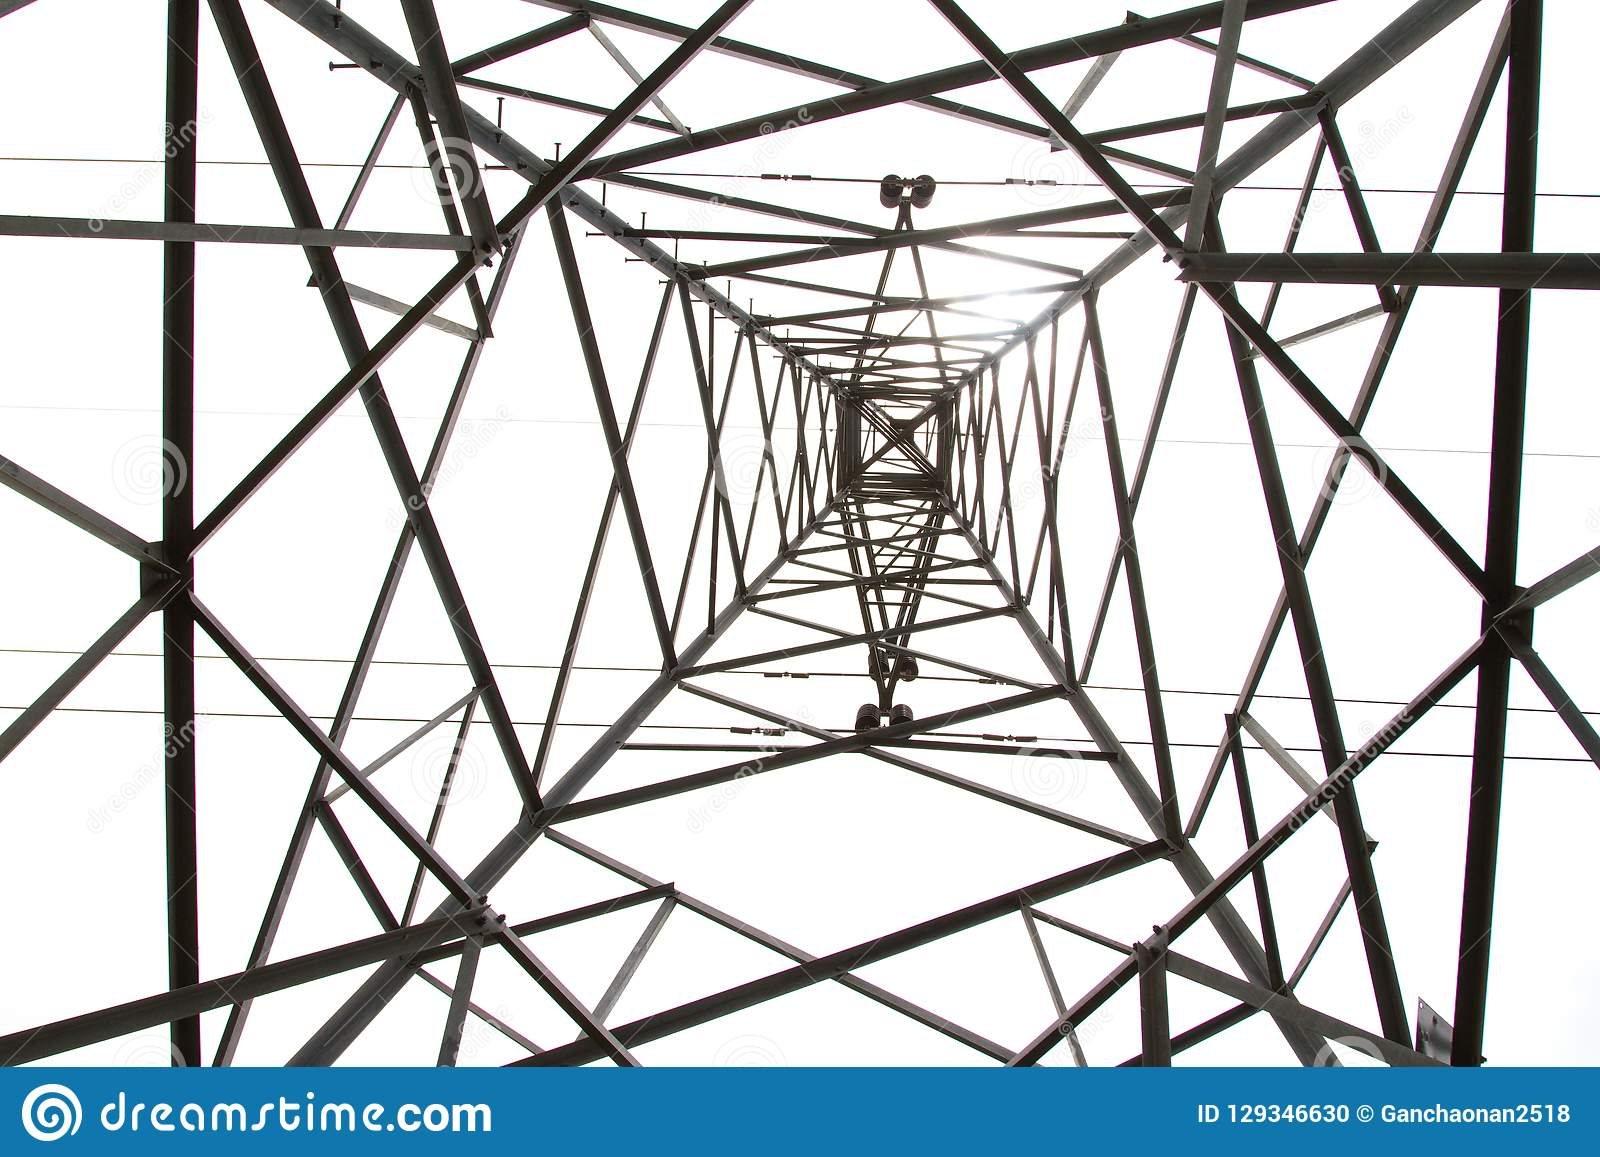 Photos from the bottom corner of the high voltage post or High voltage tower.